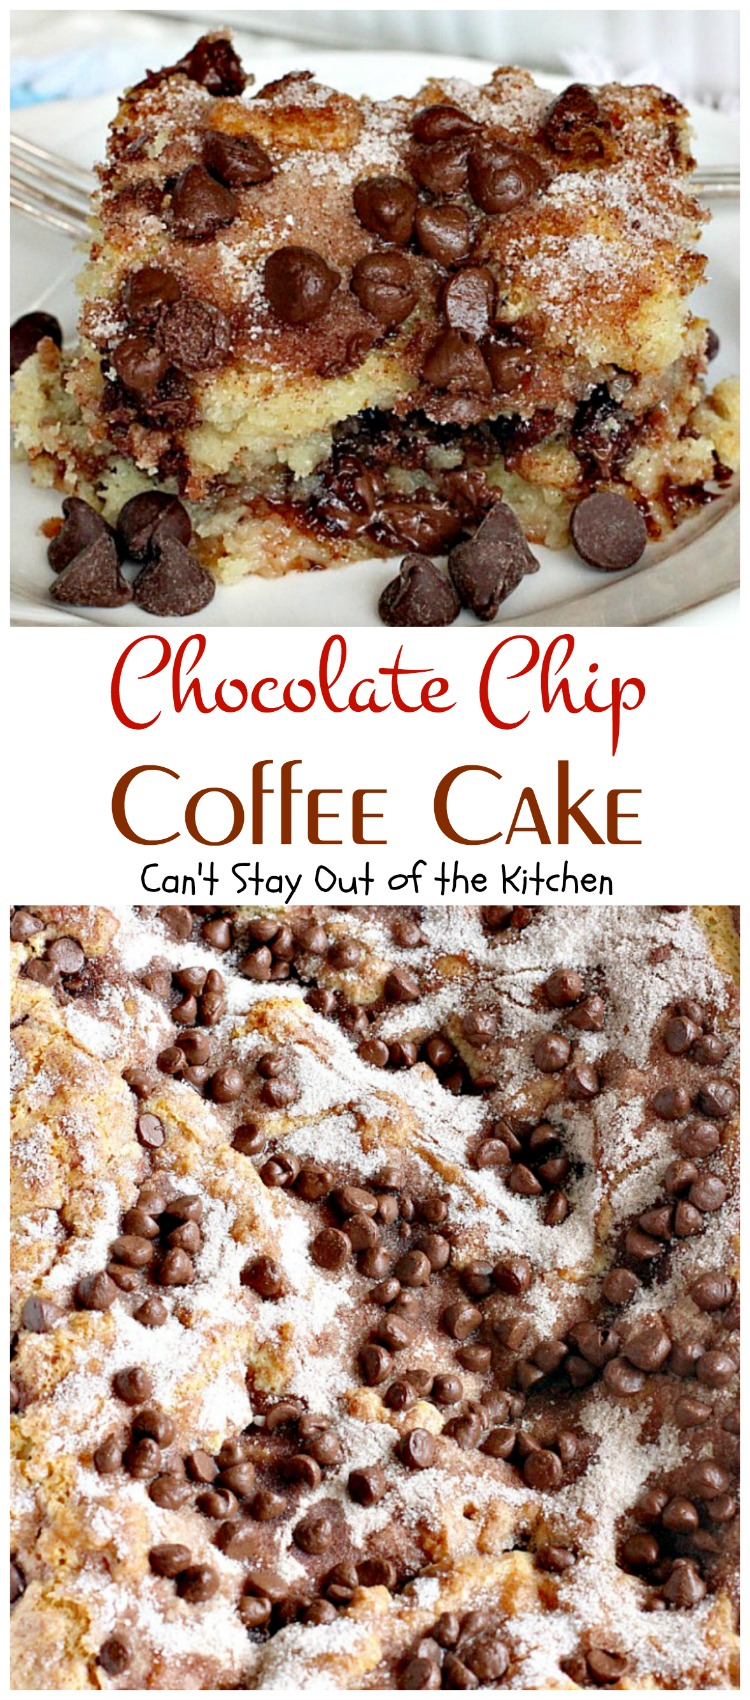 Chocolate Chip Coffee Cake - Can't Stay Out of the Kitchen